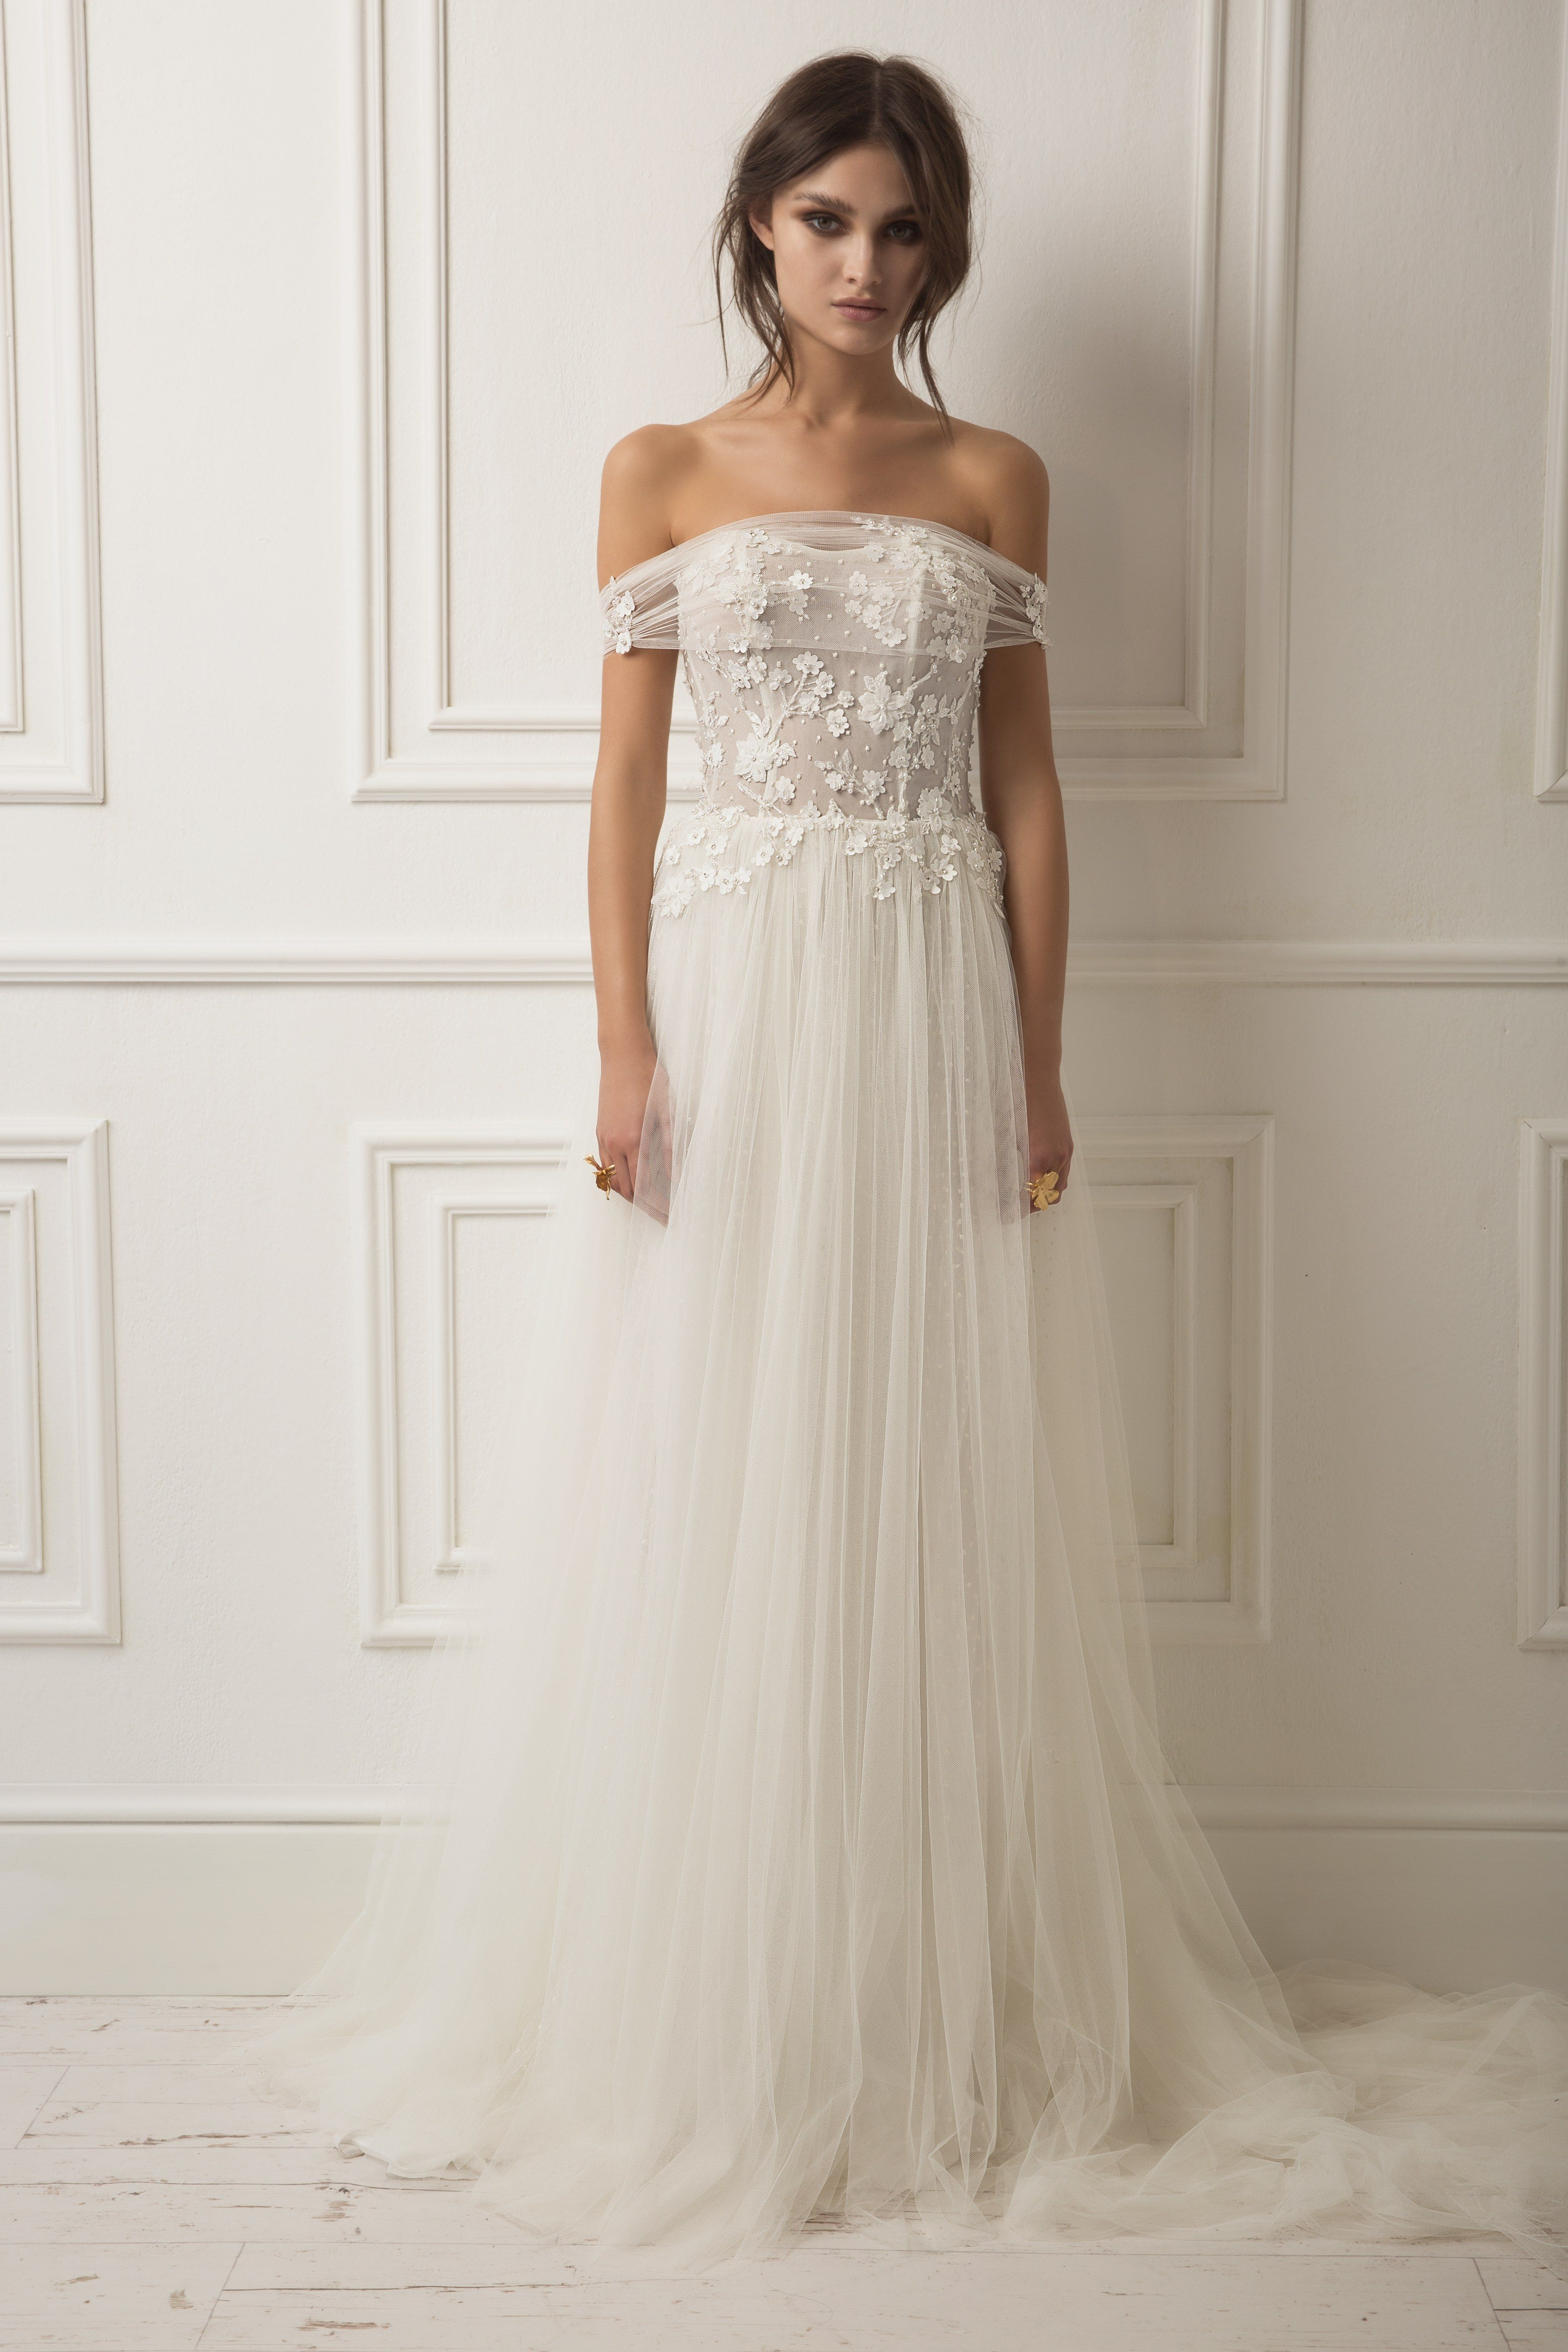 a0285702a21 Dreams by Lihi Hod Bridal   Wedding Dress Collection Spring 2019 ...